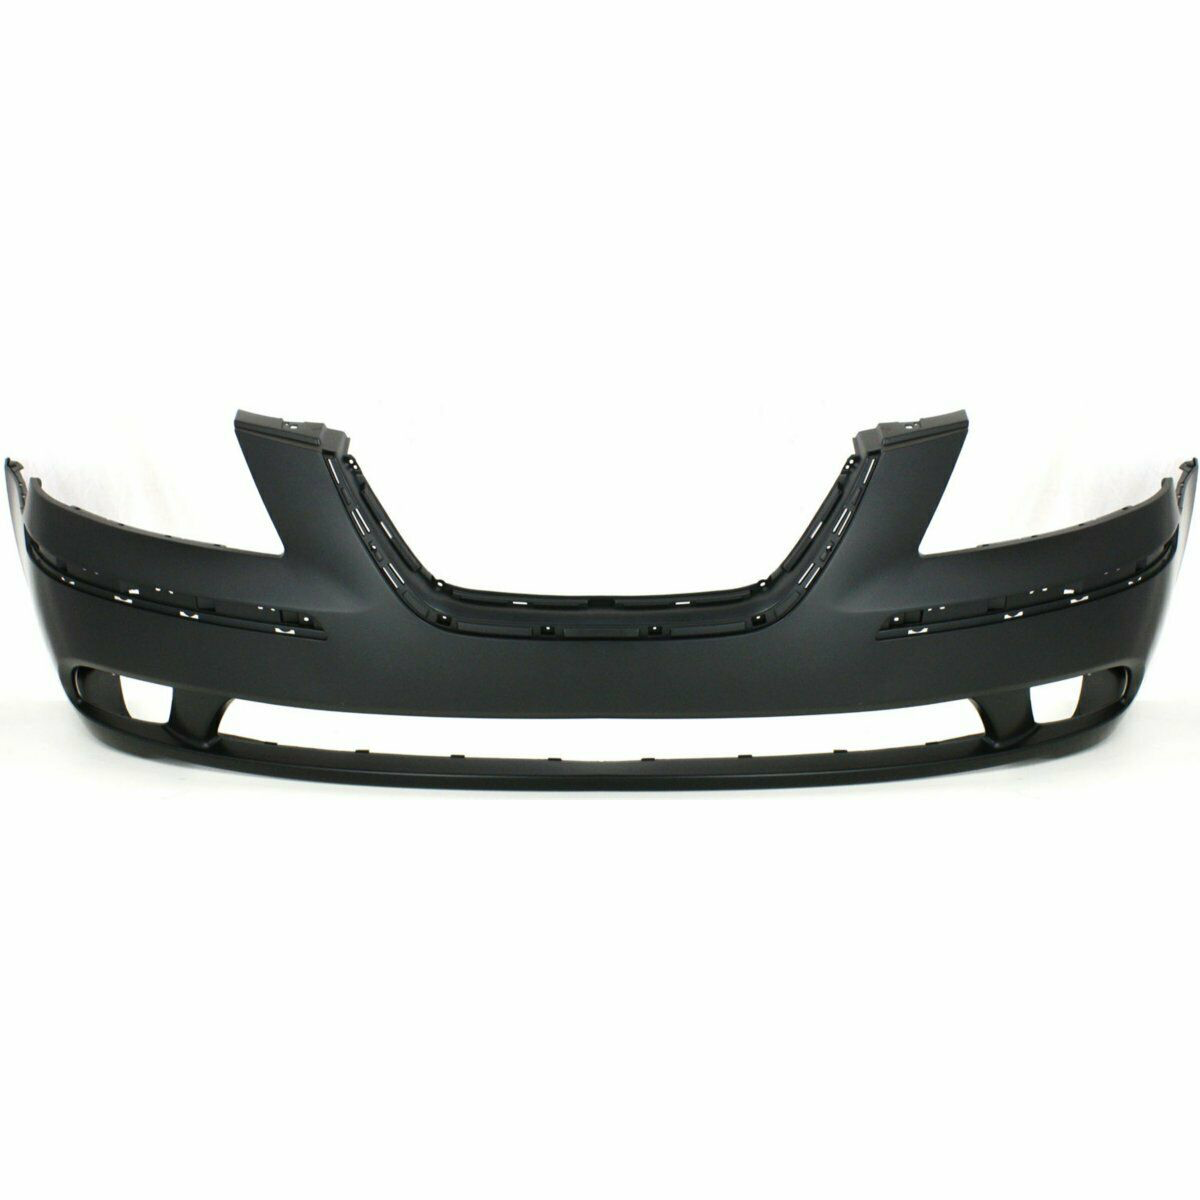 2009-2010 Hyundai Sonata w/Fog hole Front Bumper Painted to Match